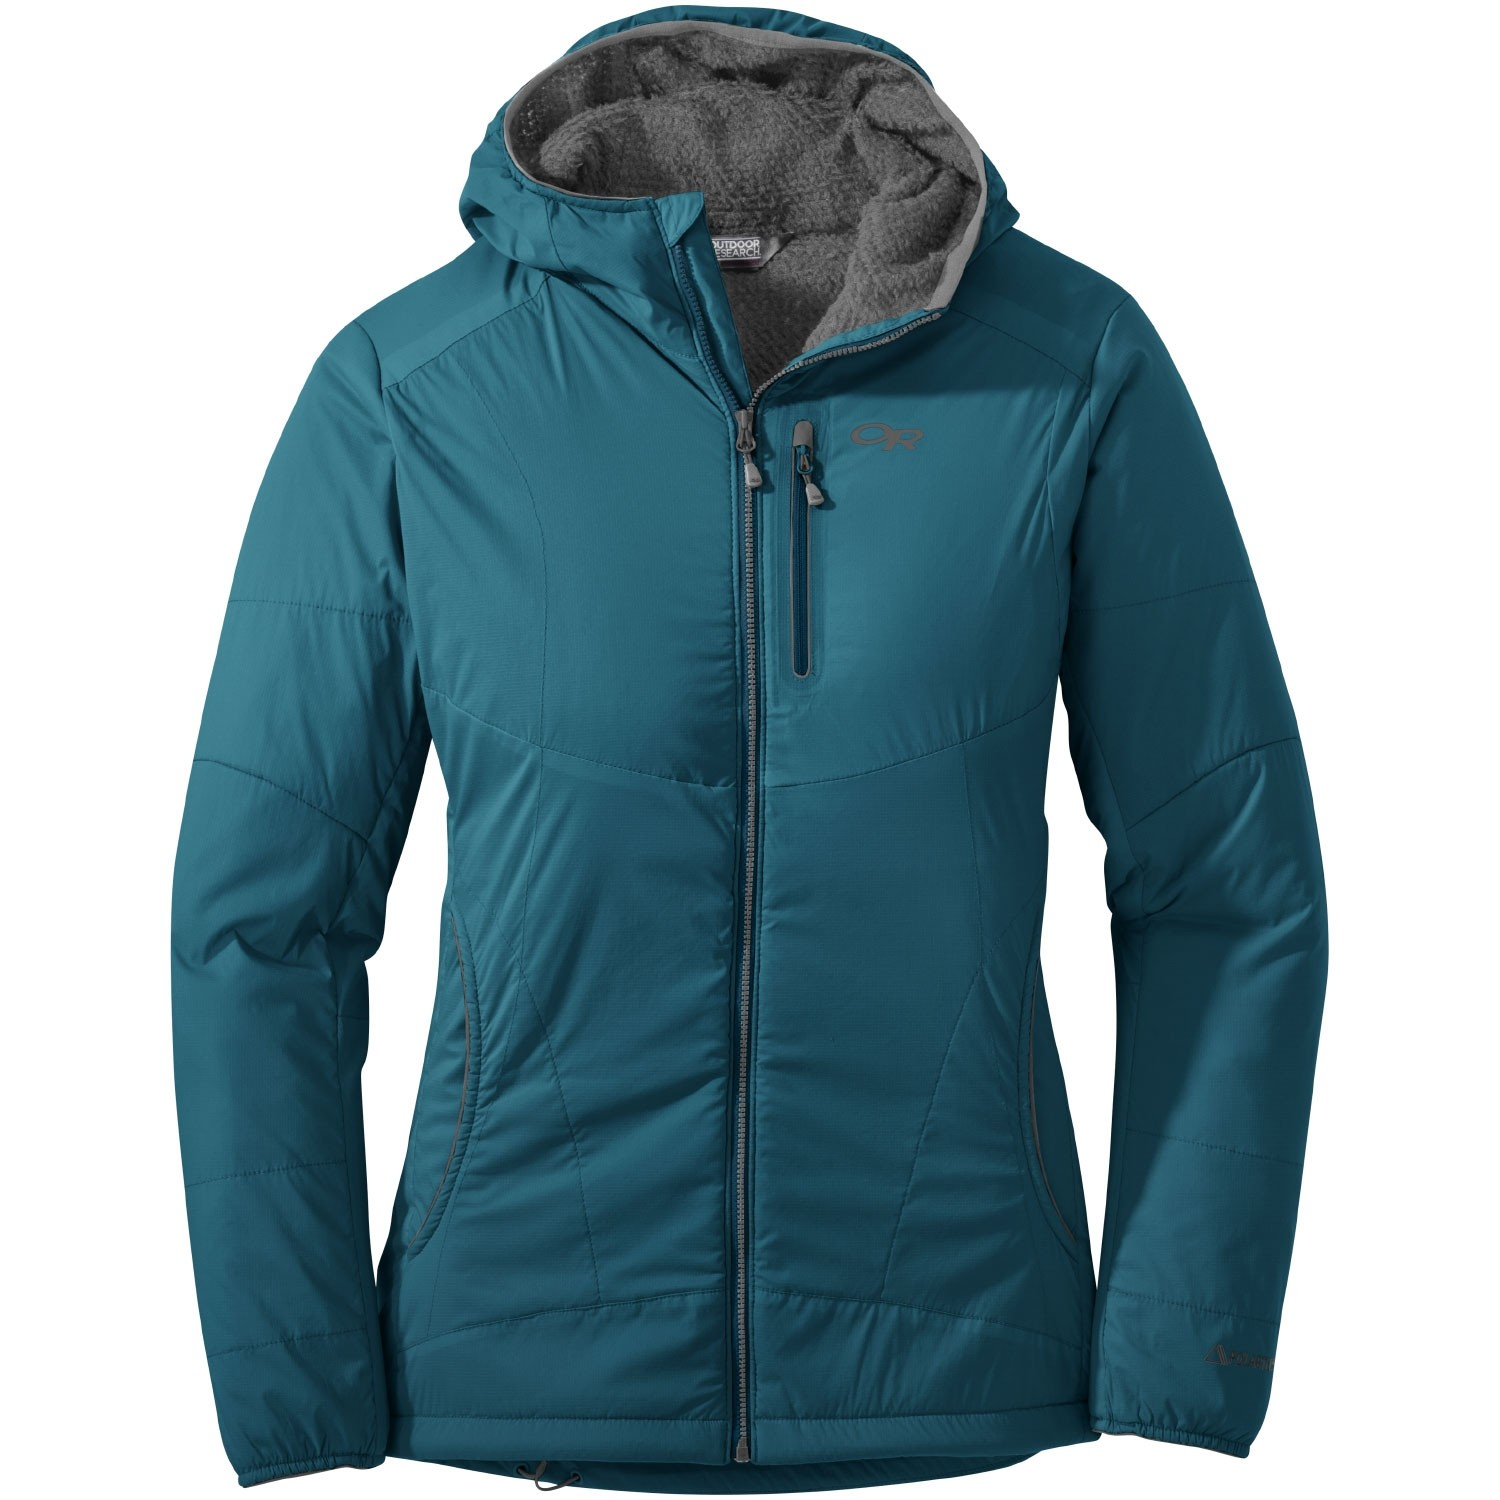 Outdoor Research Women's Ascendant Hoody - Washed Peacock/Pewter